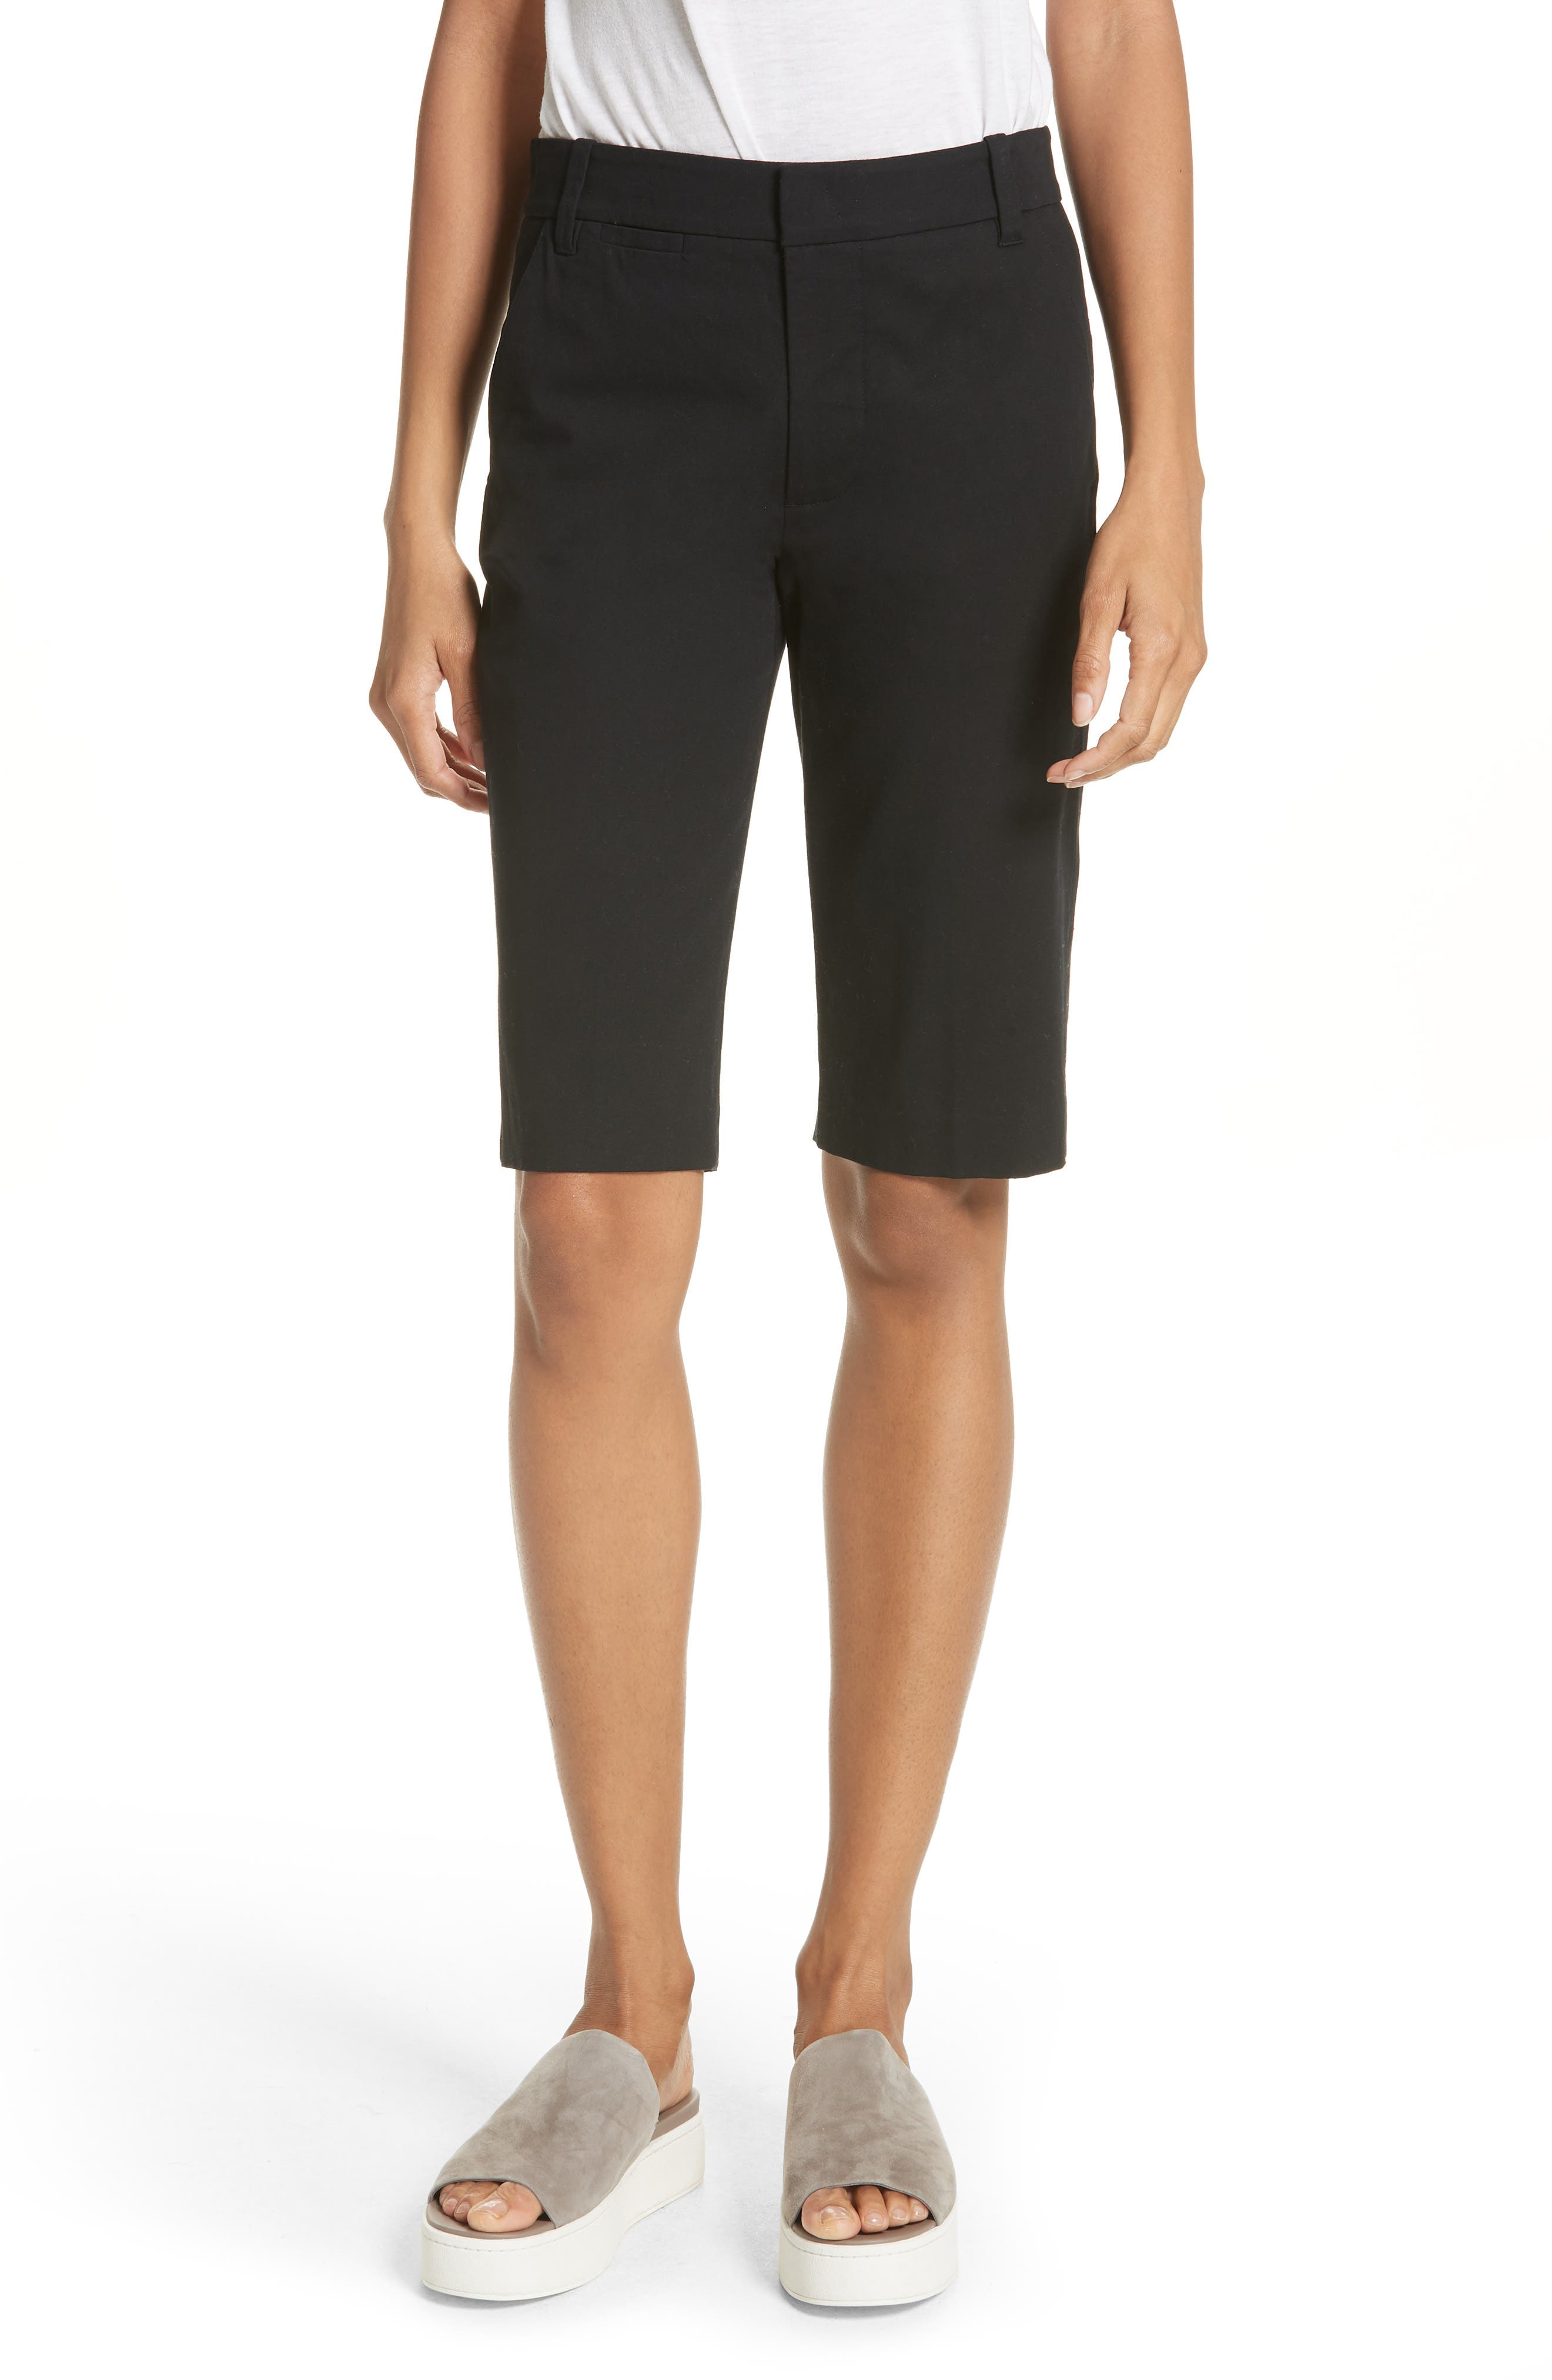 Bermuda Shorts,                         Main,                         color, BLACK